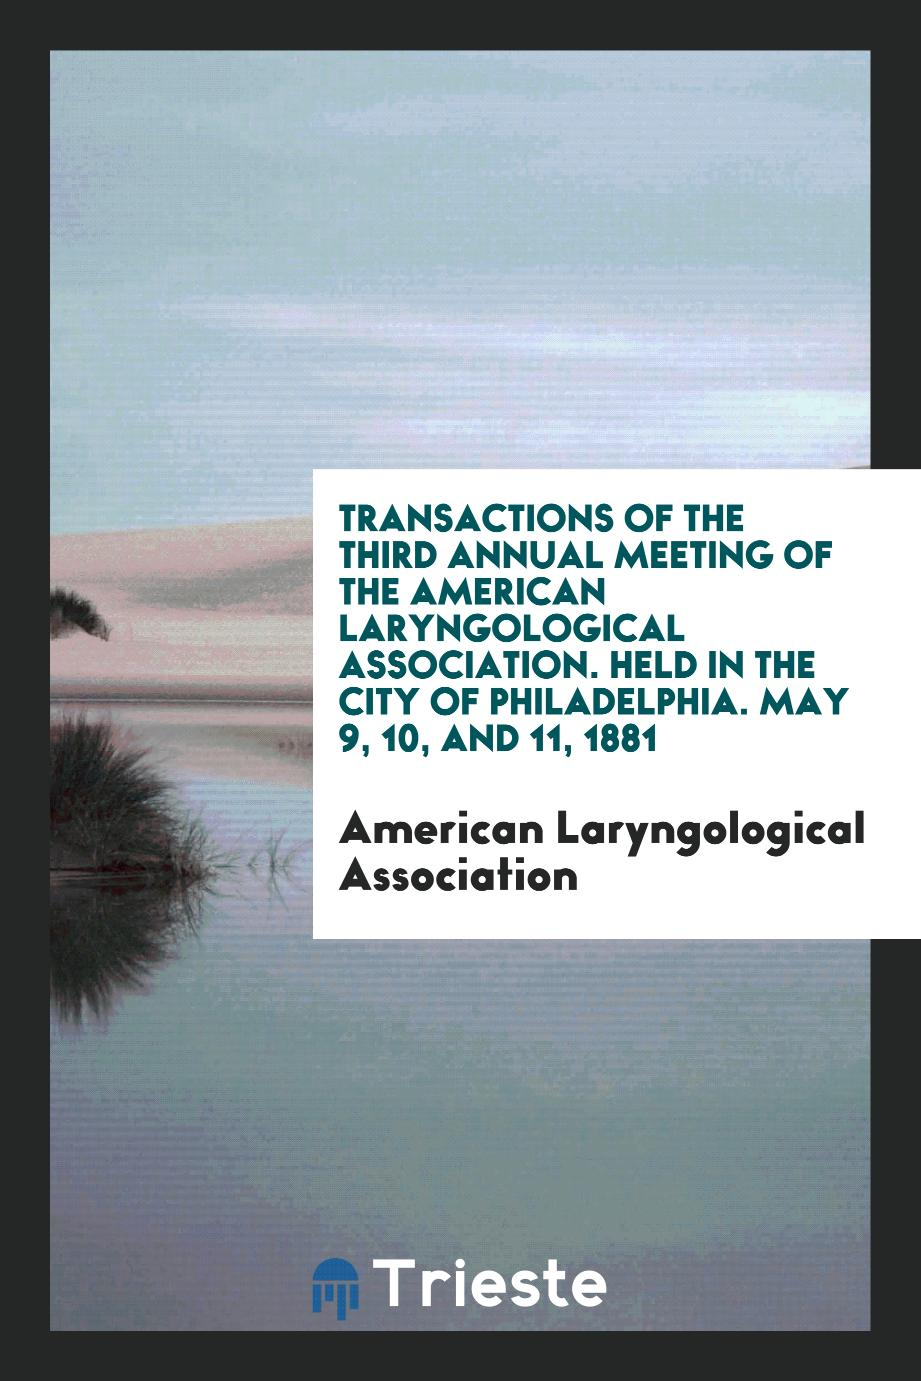 Transactions of the Third Annual Meeting of the American Laryngological Association. Held in the City of Philadelphia. May 9, 10, and 11, 1881